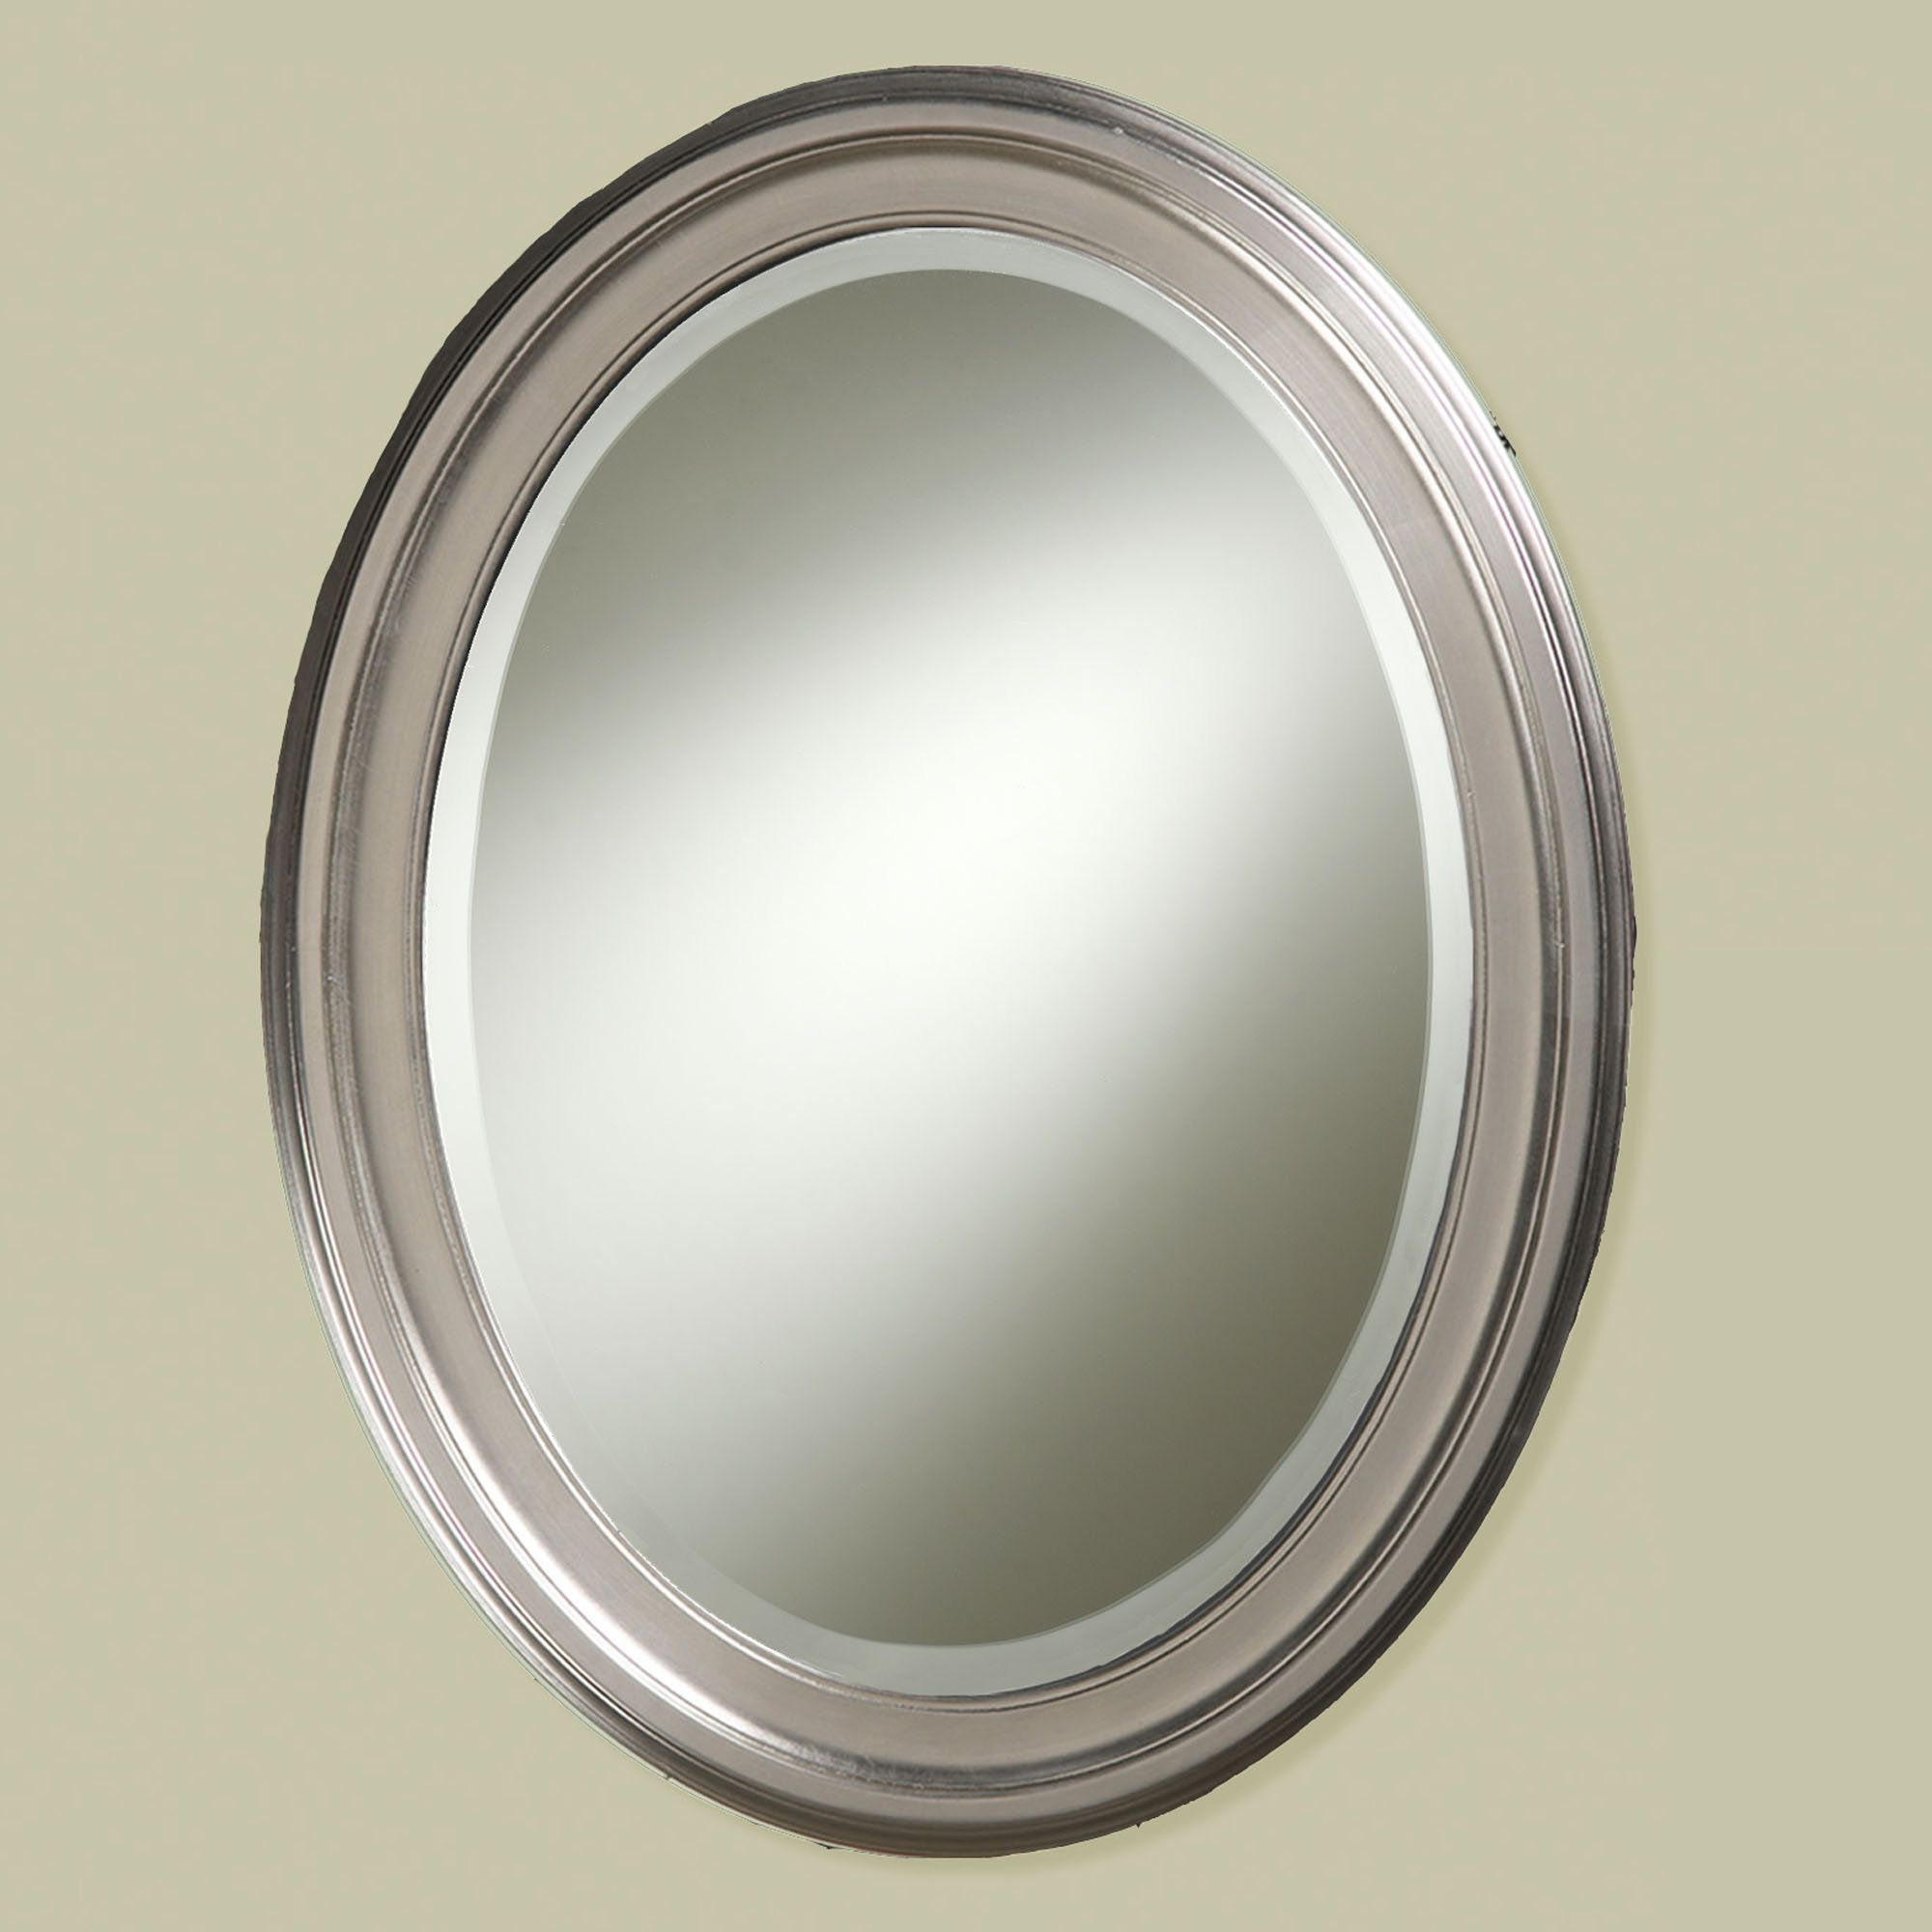 A Bathroom Wall Mirror Made Form Brushed Nickel